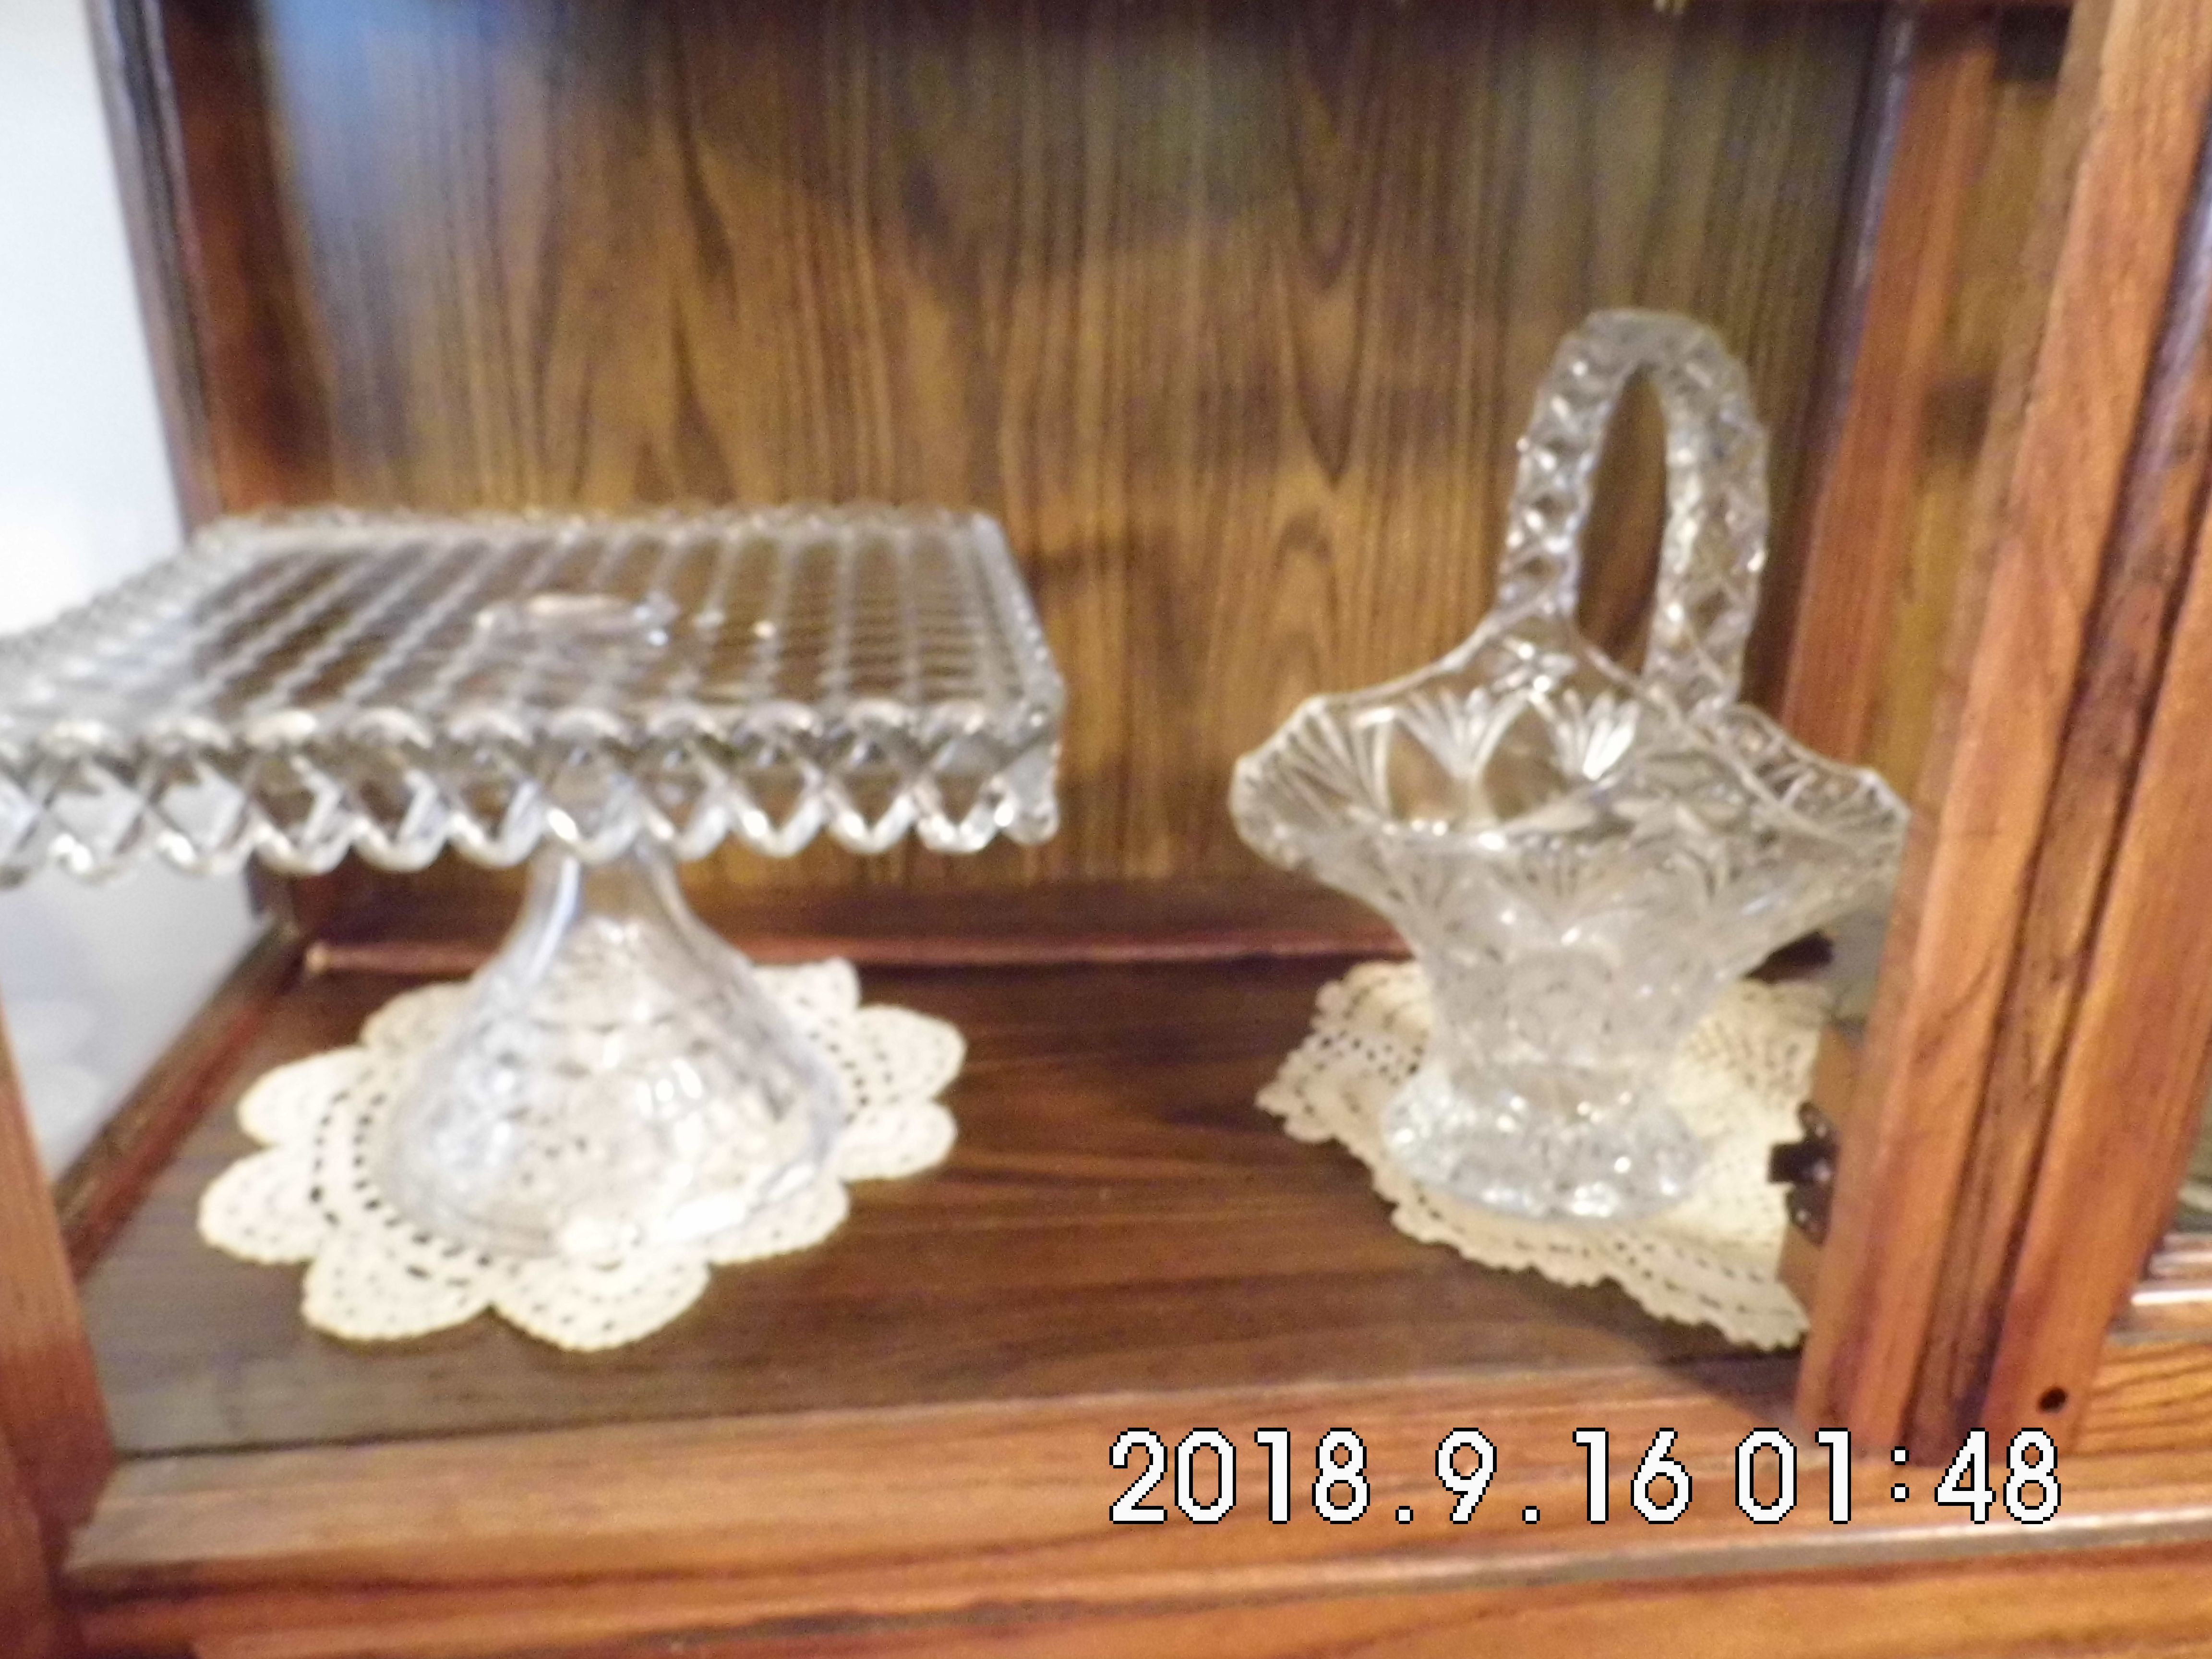 Crystal Cake Plate and Bowl